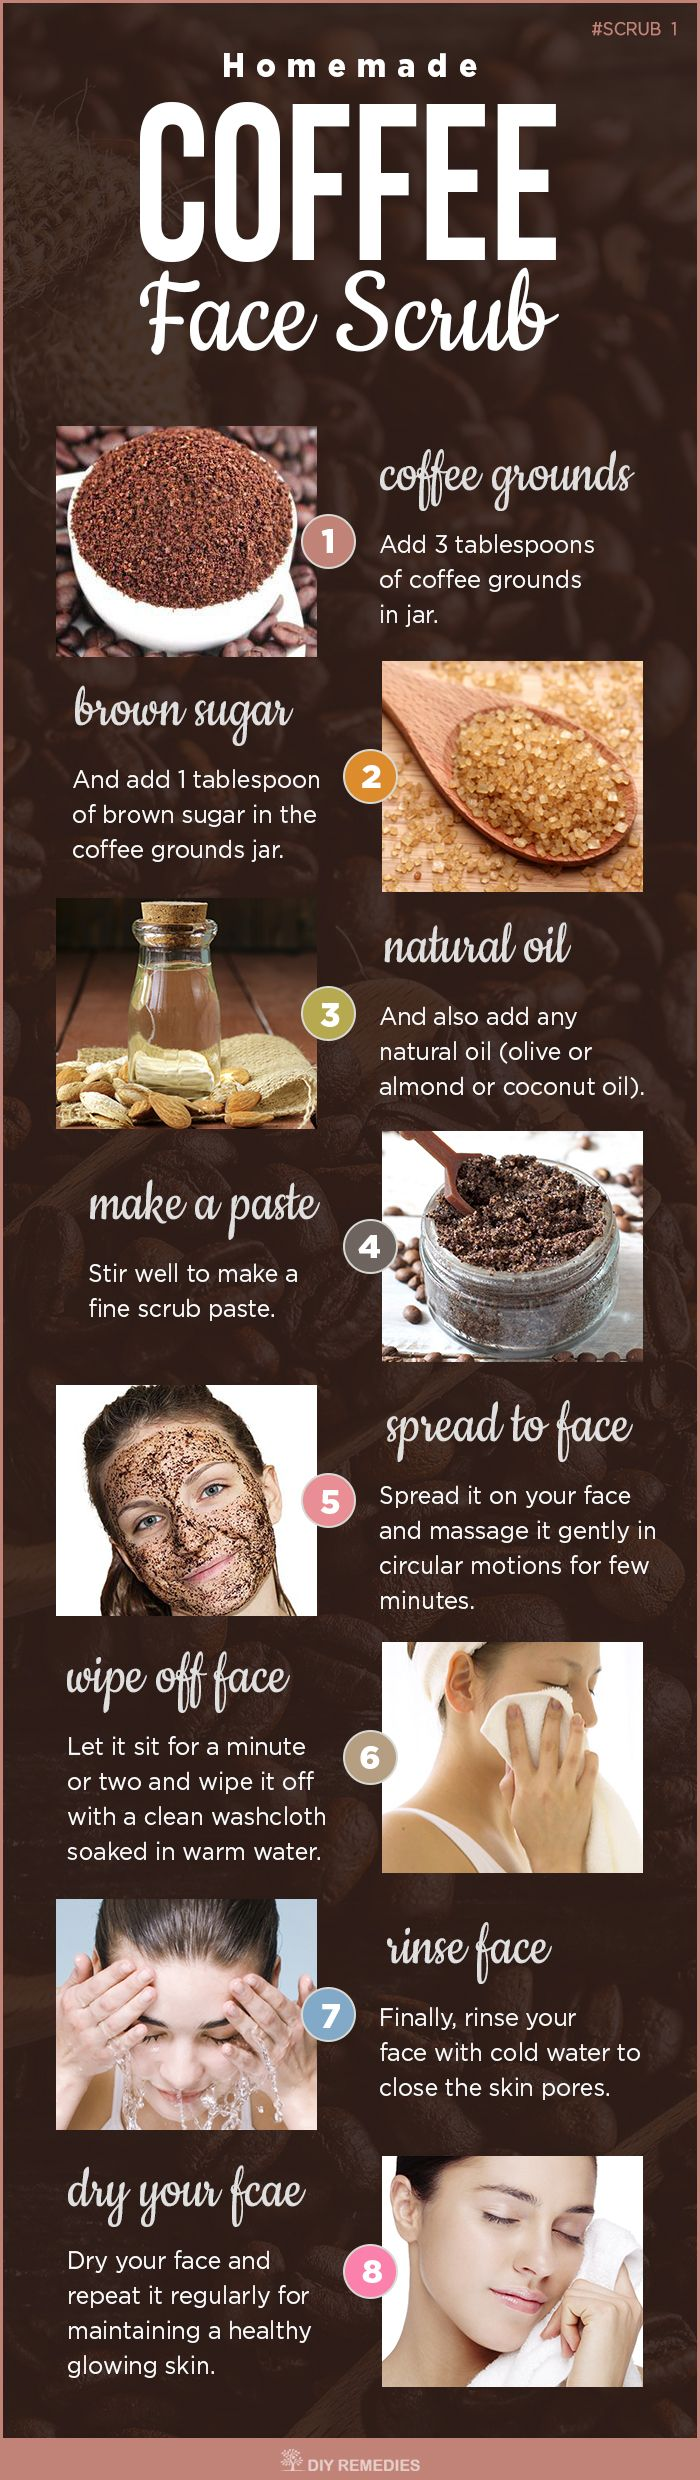 25+ Best Homemade Exfoliator Trending Ideas On Pinterest  Exfoliating Face  Scrub, Homemade Face Scrubs And Natural Face Exfoliator